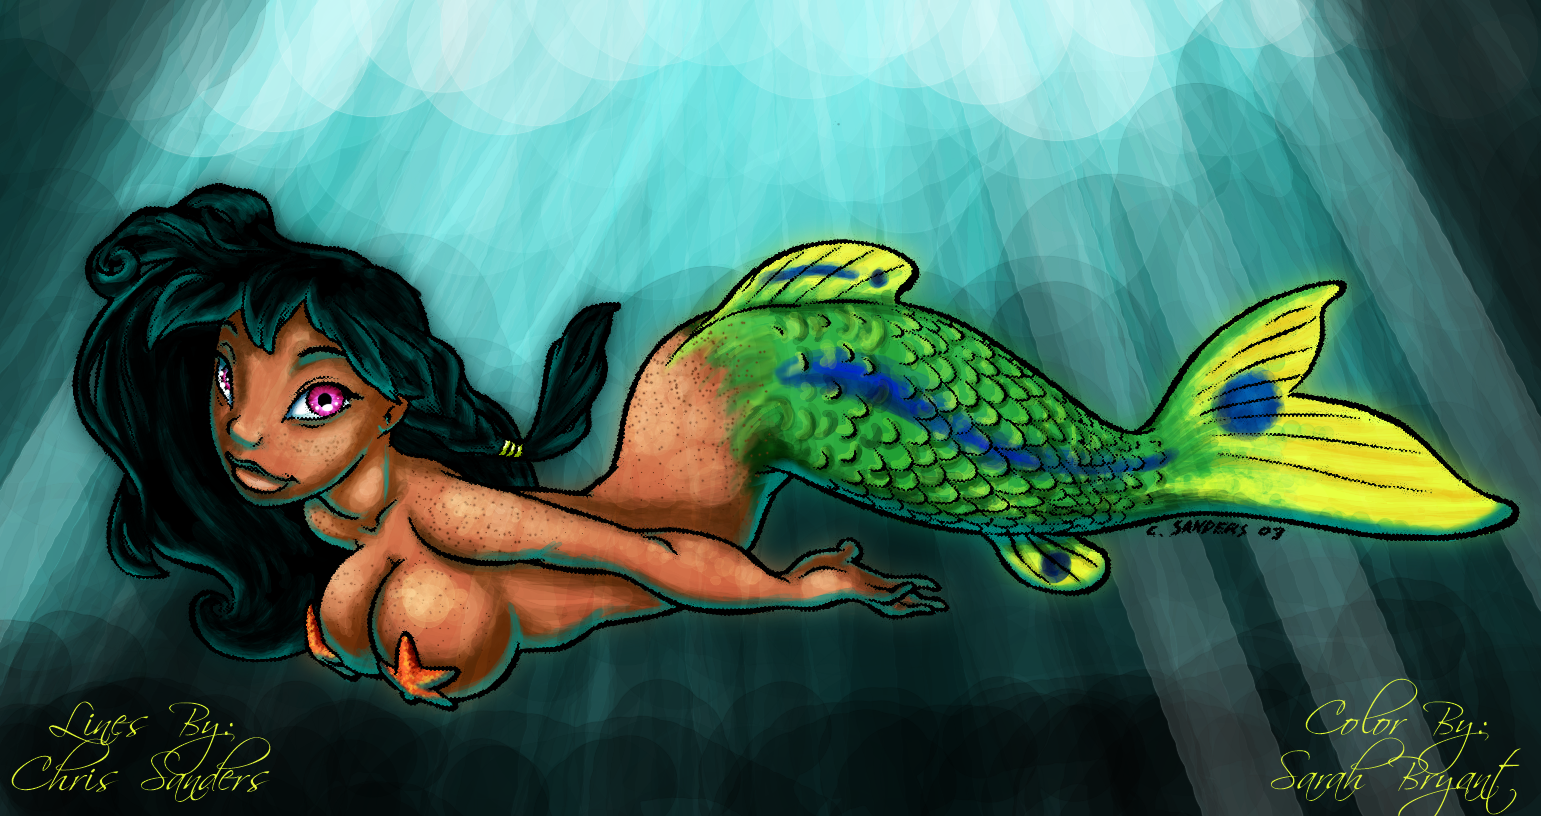 Chris Sanders Mermaid by spazzbot on DeviantArt